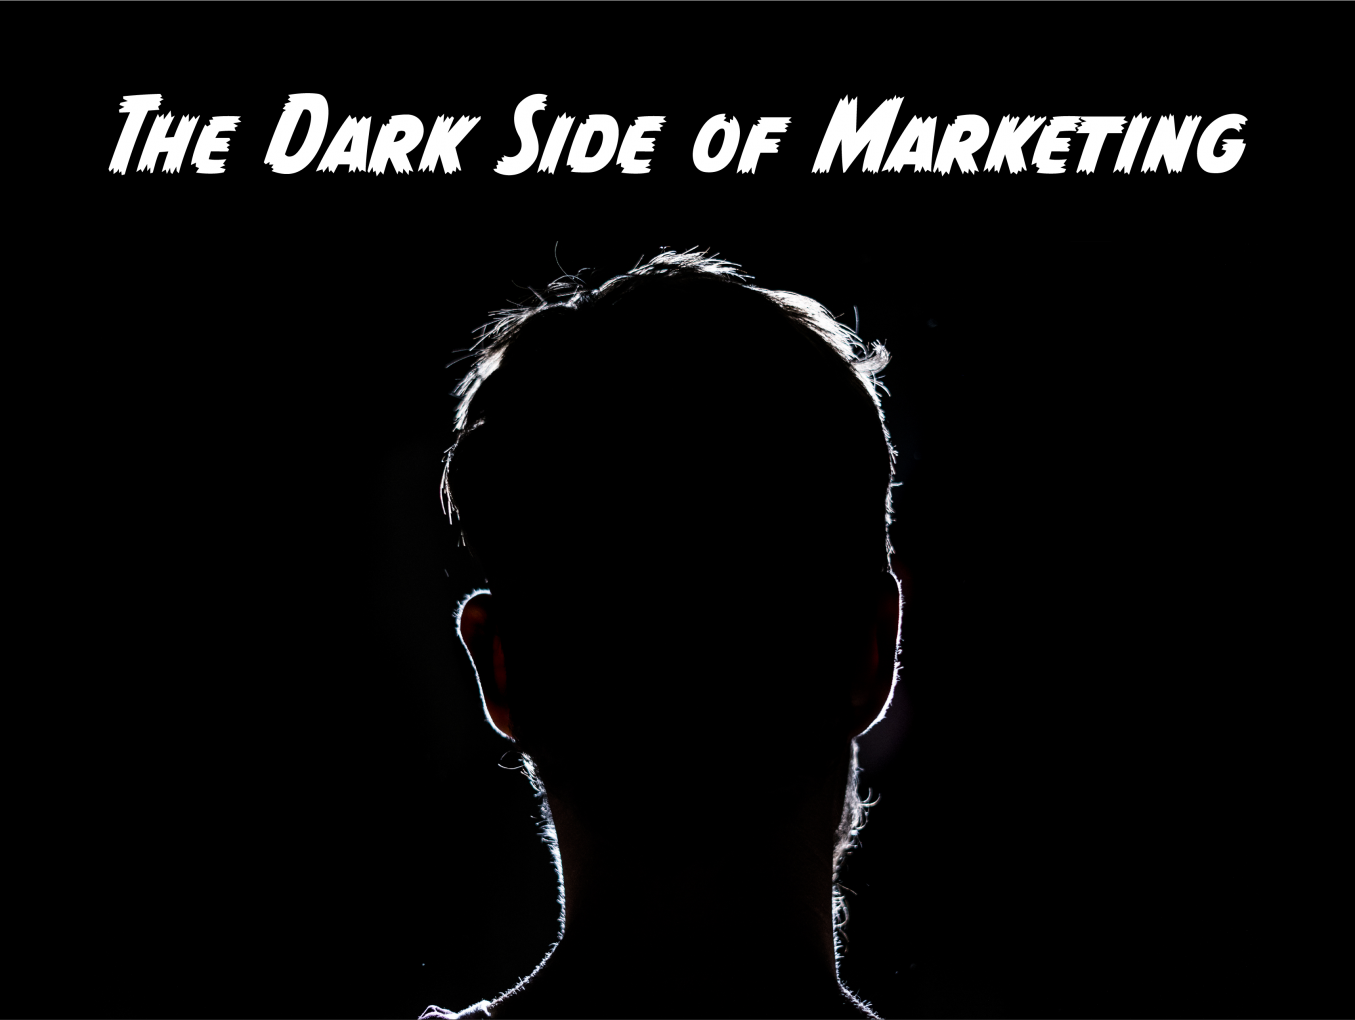 Two Lessons from the Dark Side of Marketing